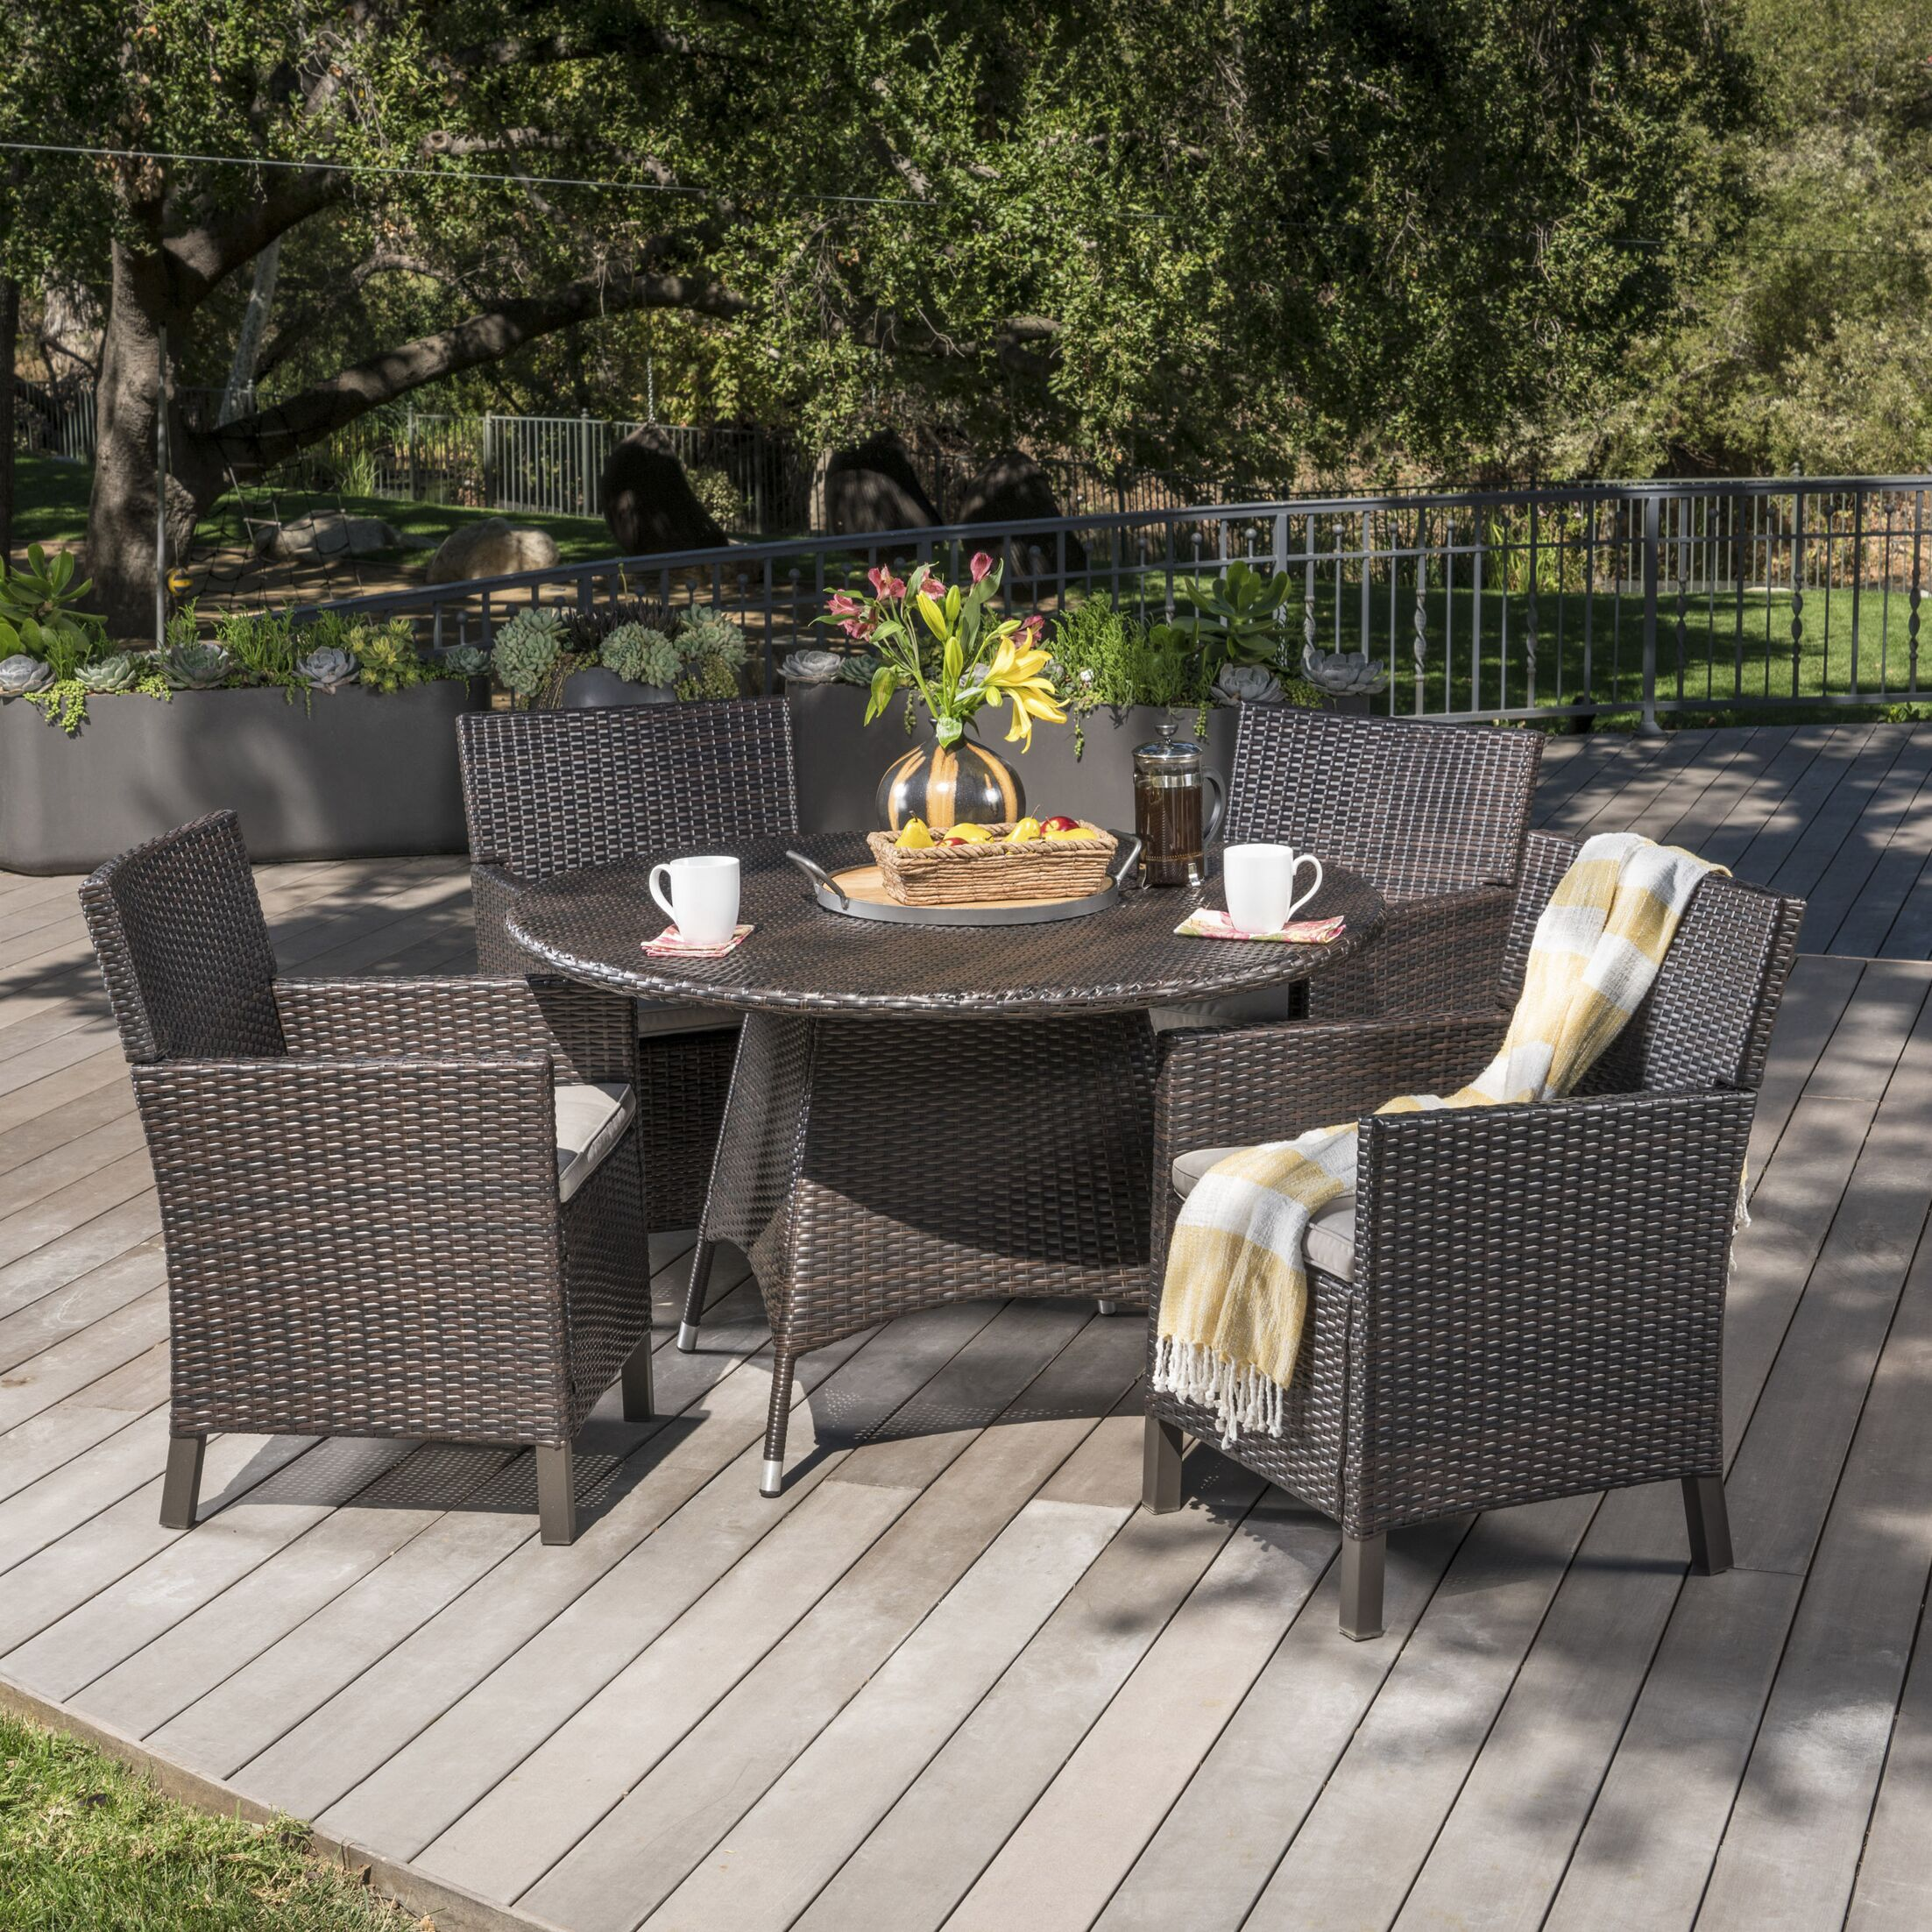 Argueta Outdoor Wicker 5 Piece Dining Set with Cushions Color: Brown